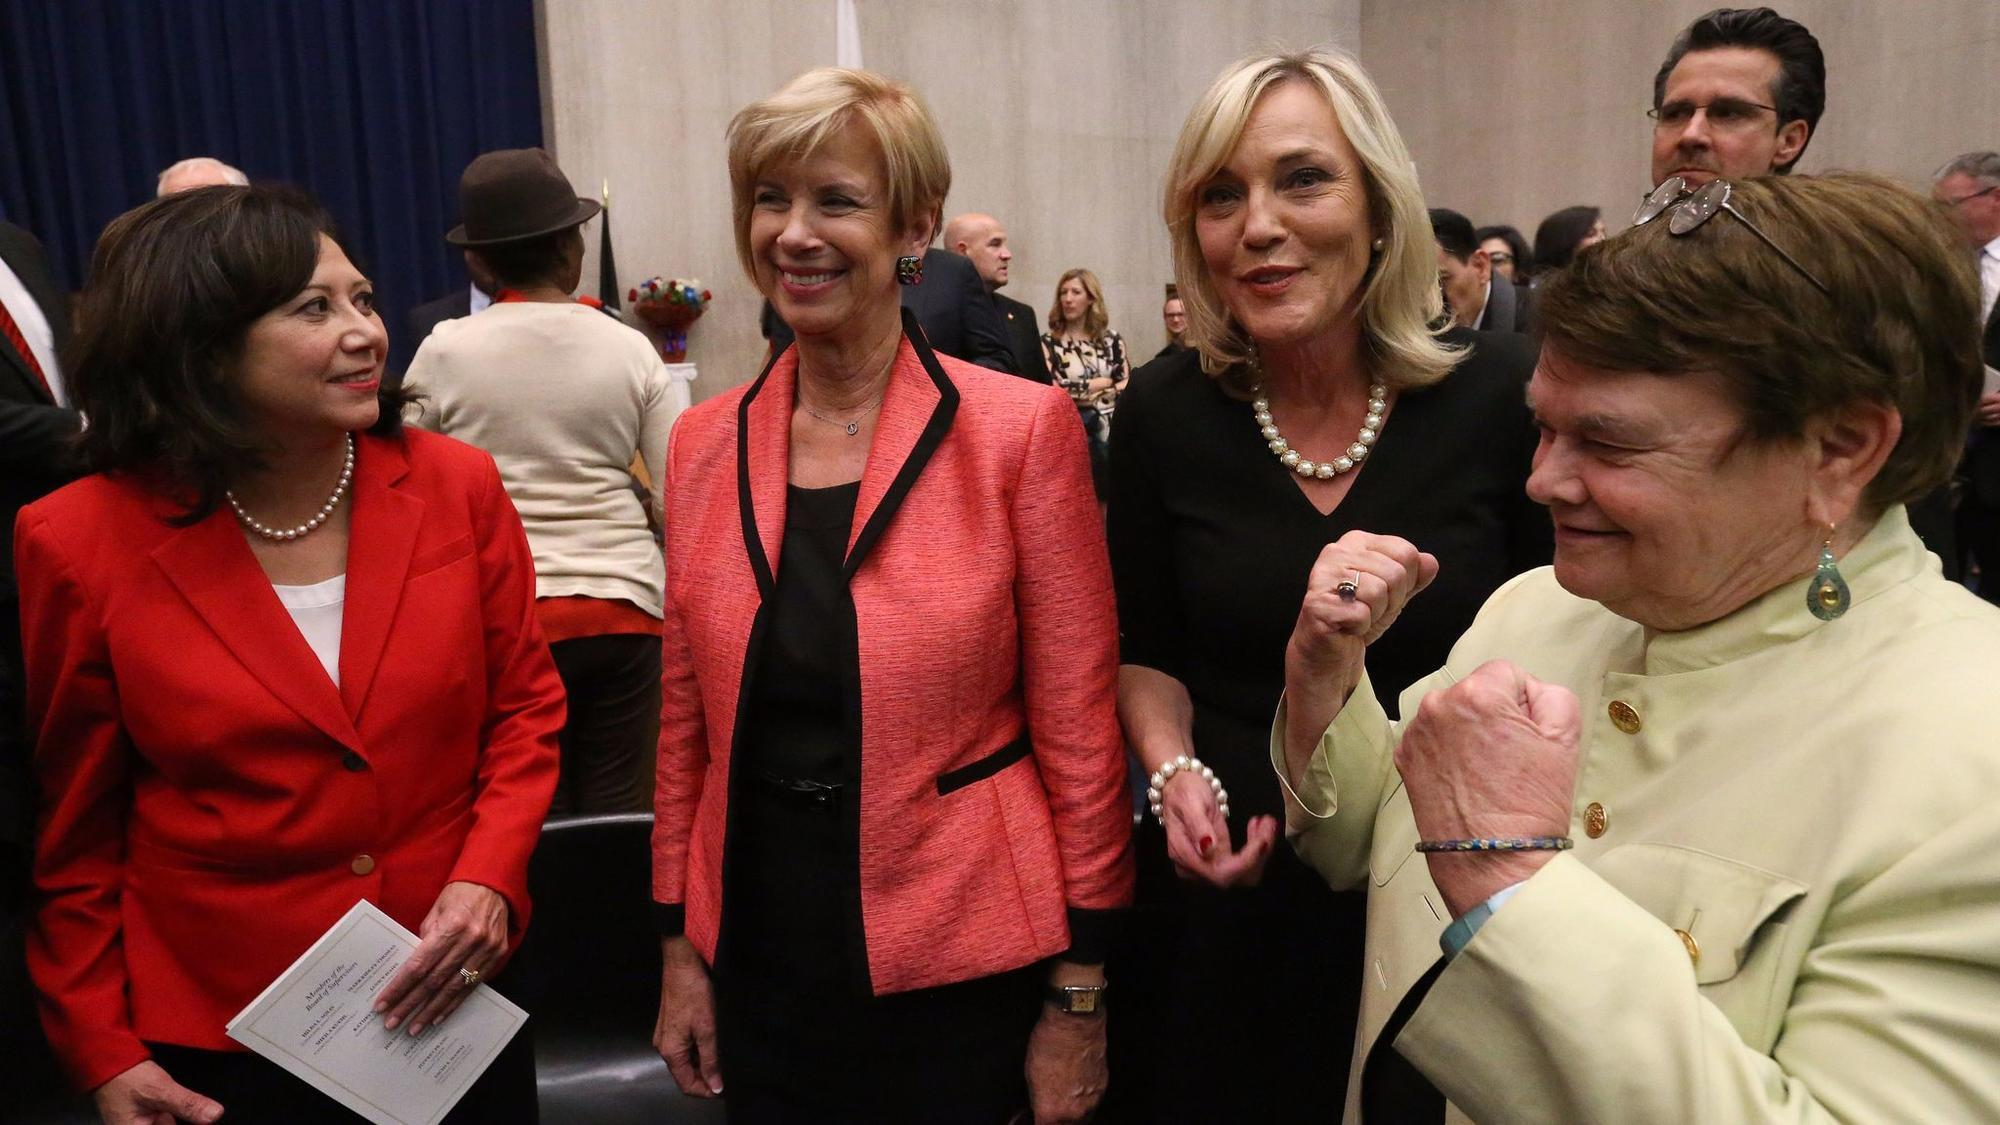 L.A. County leaders review sexual harassment policies